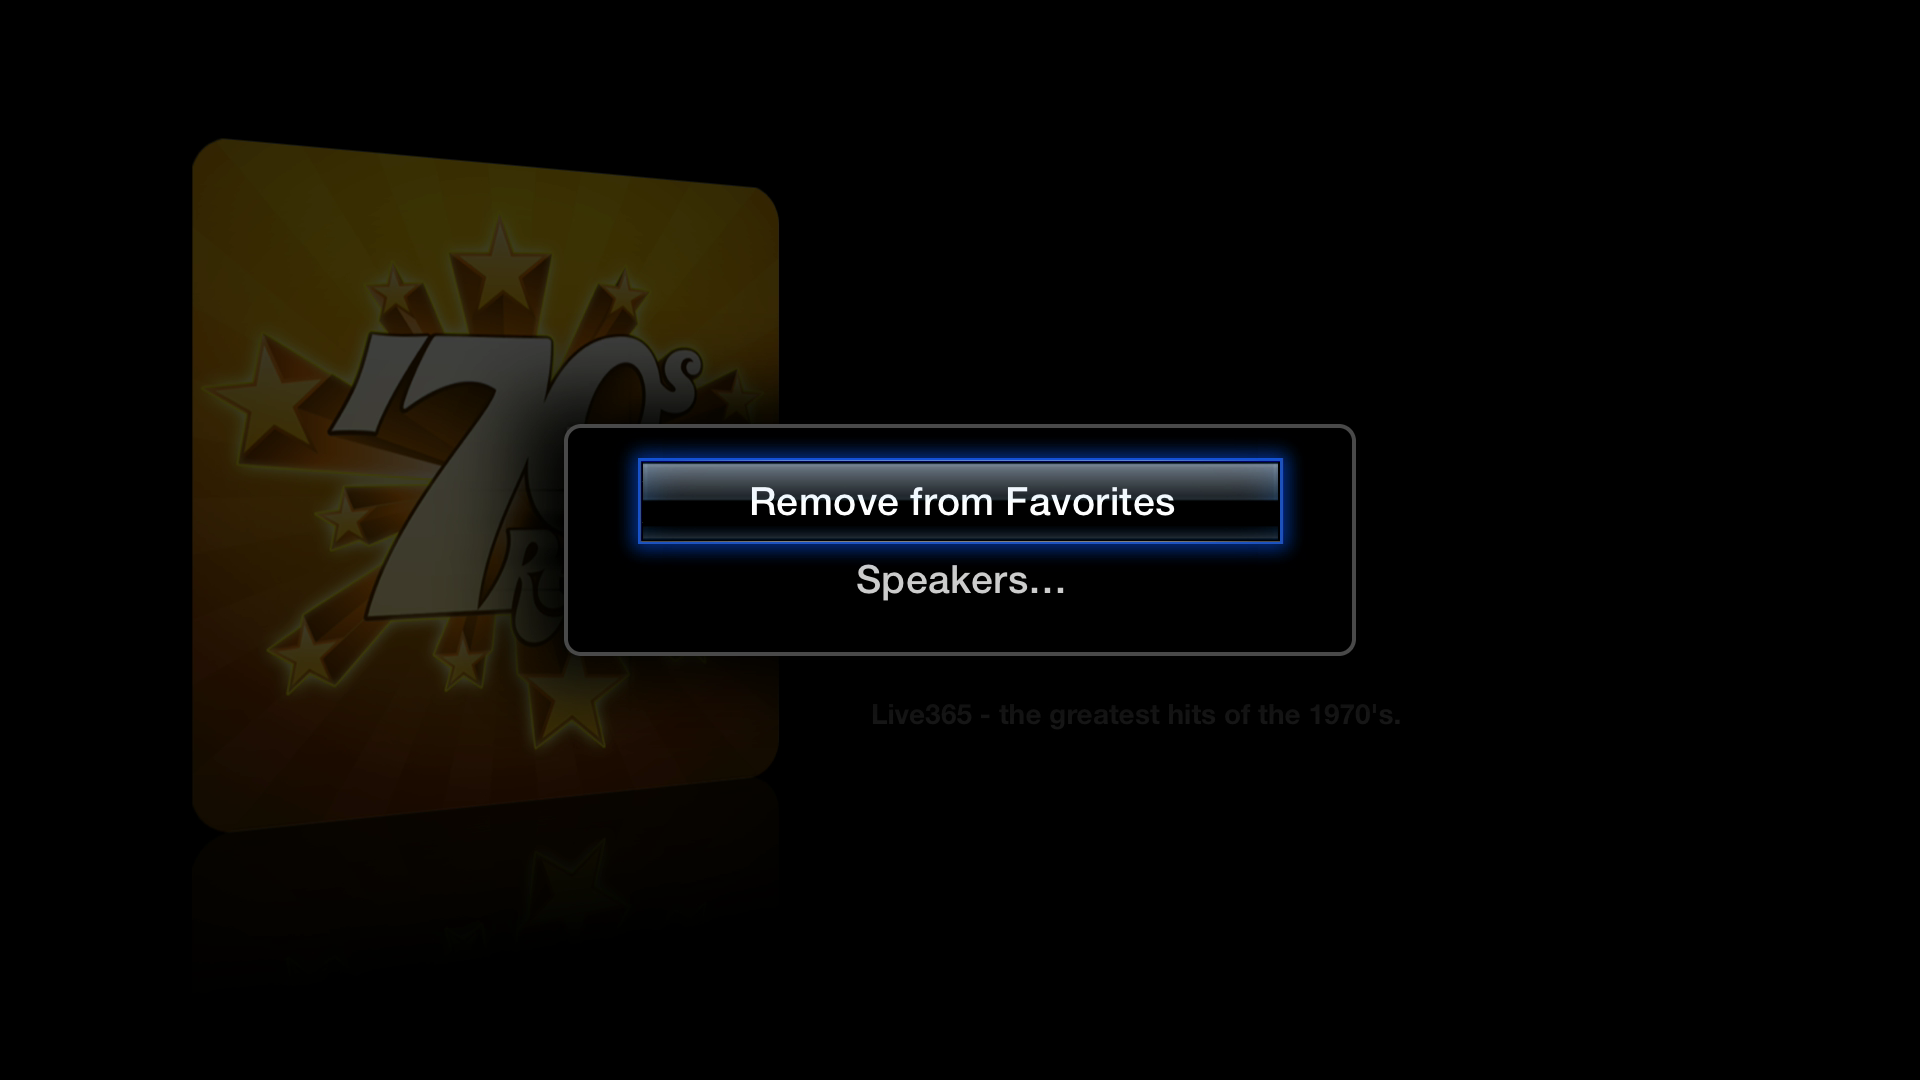 Figure 21: Hold Select while listening to a station to remove it from favorites or select an AirPlay speaker.